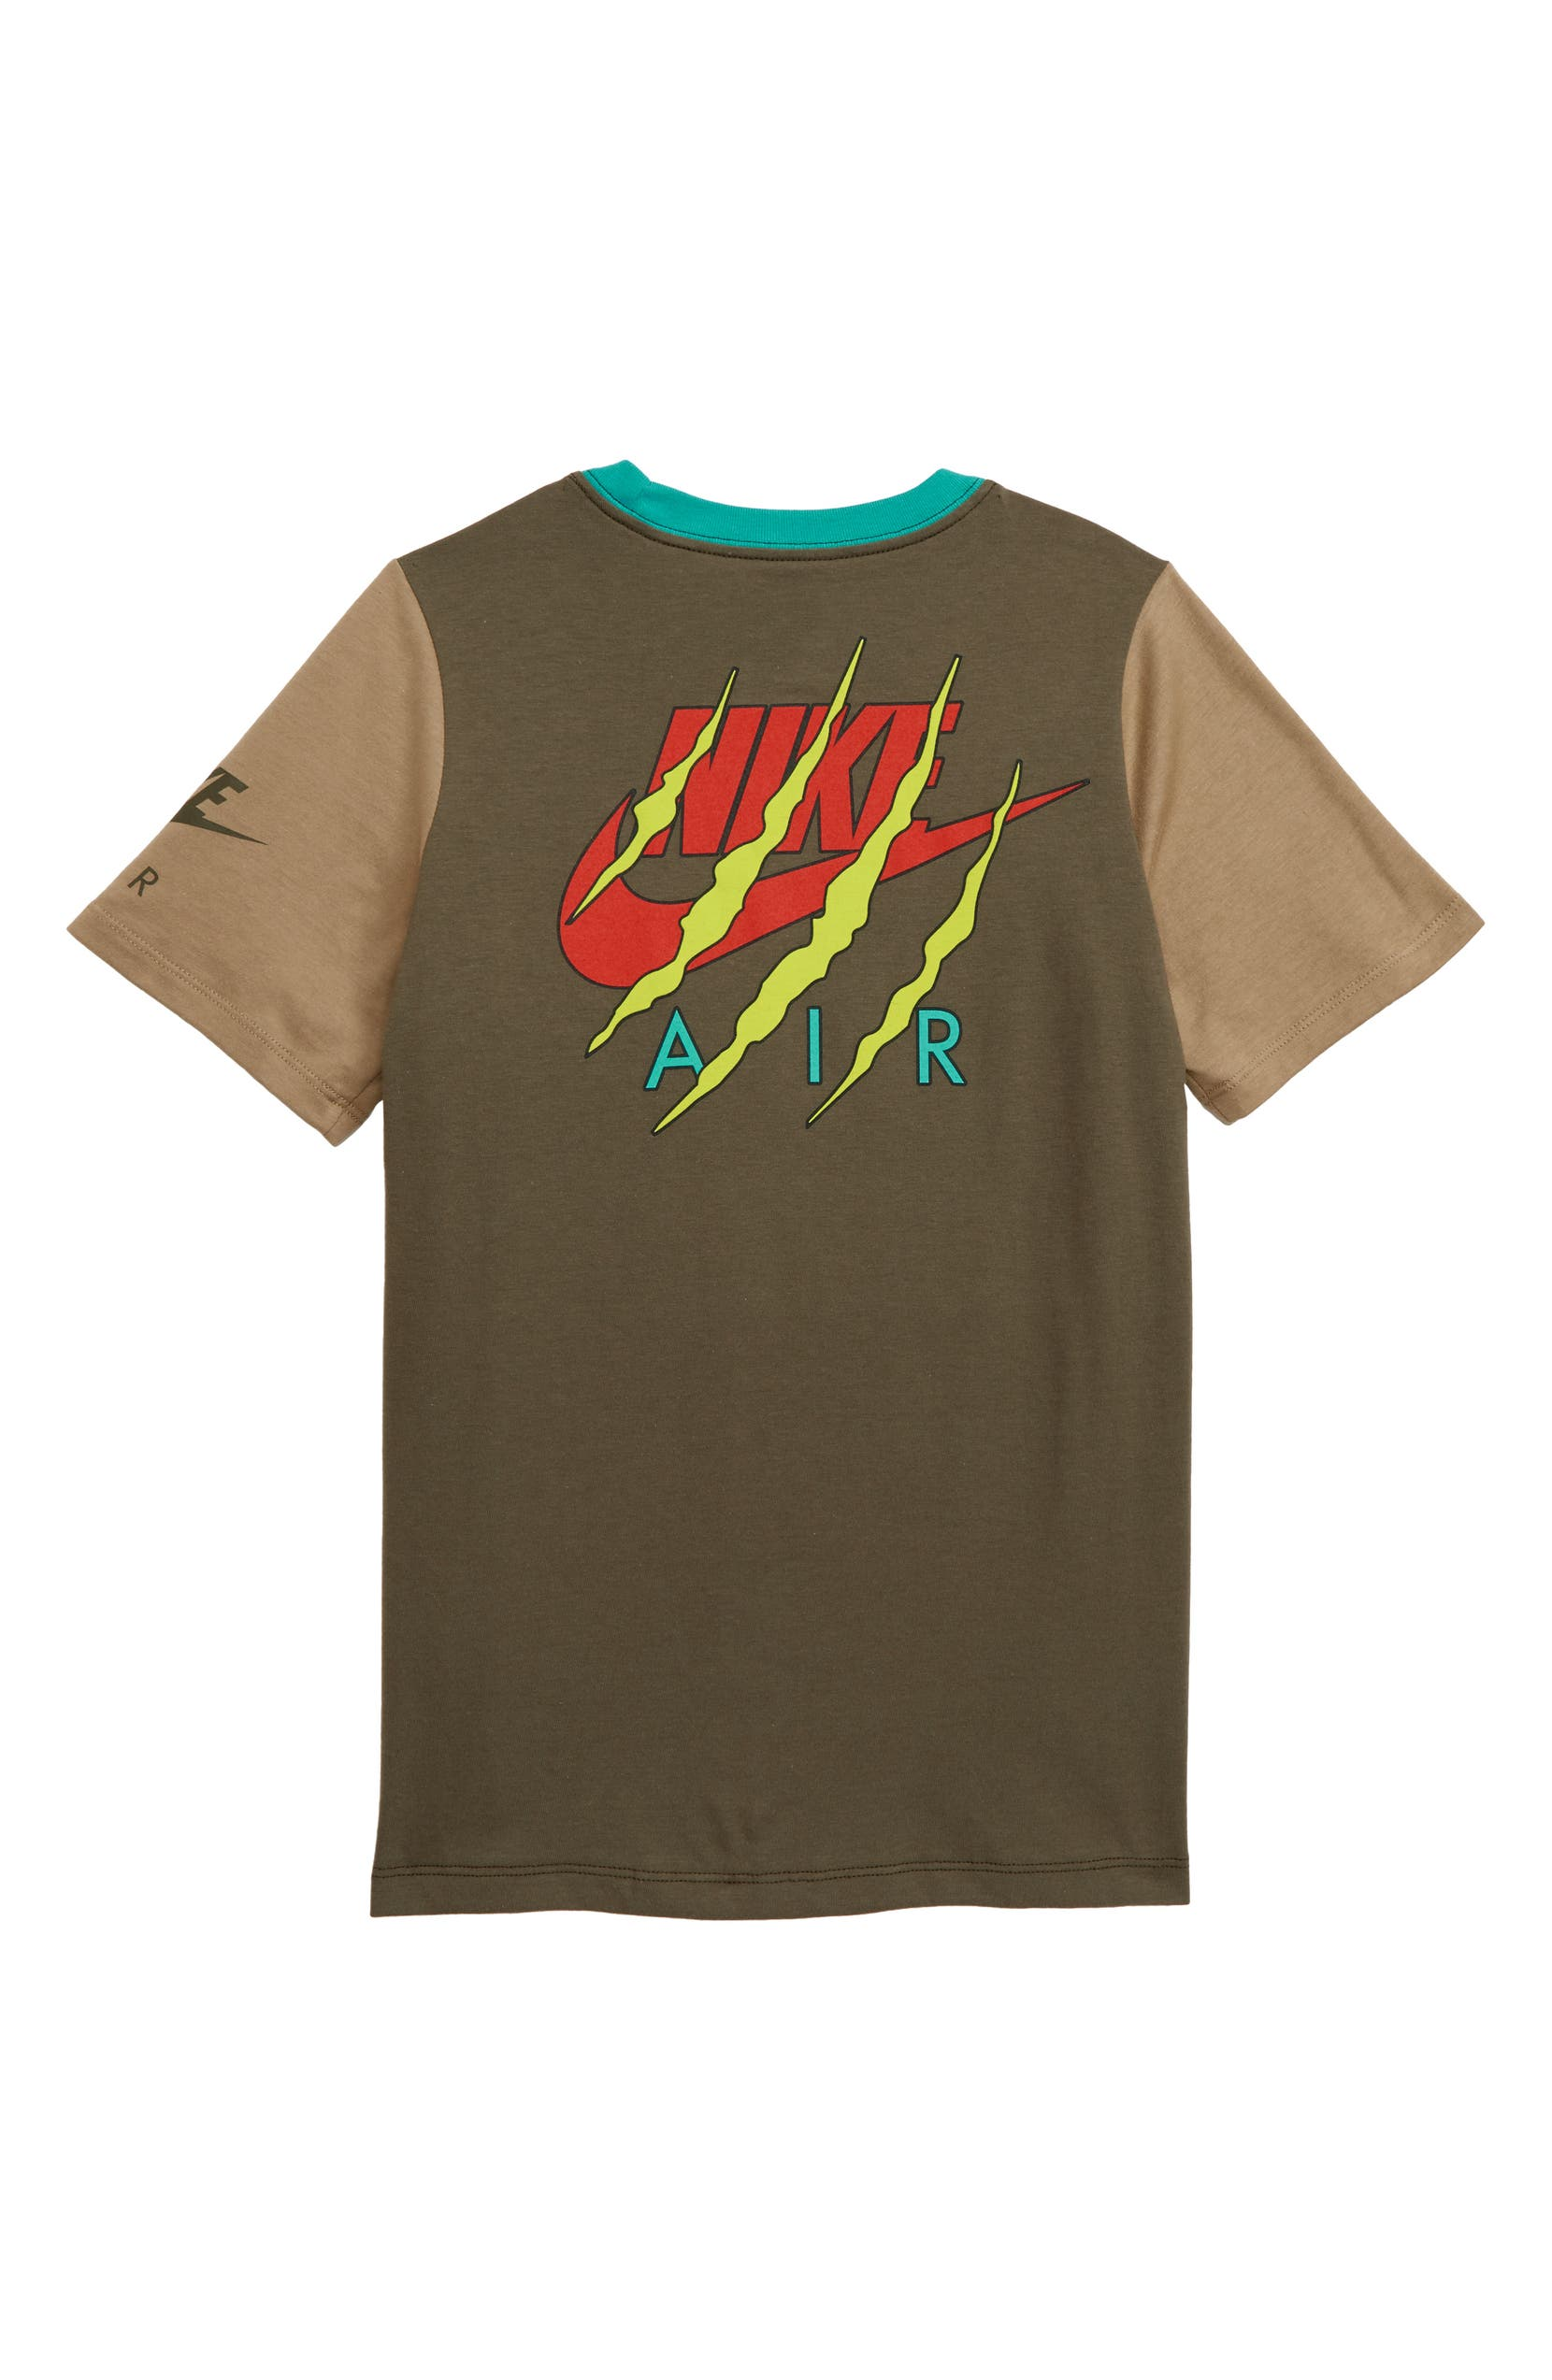 unique design outlet store sale clearance prices Sportswear Jurassic T-Shirt